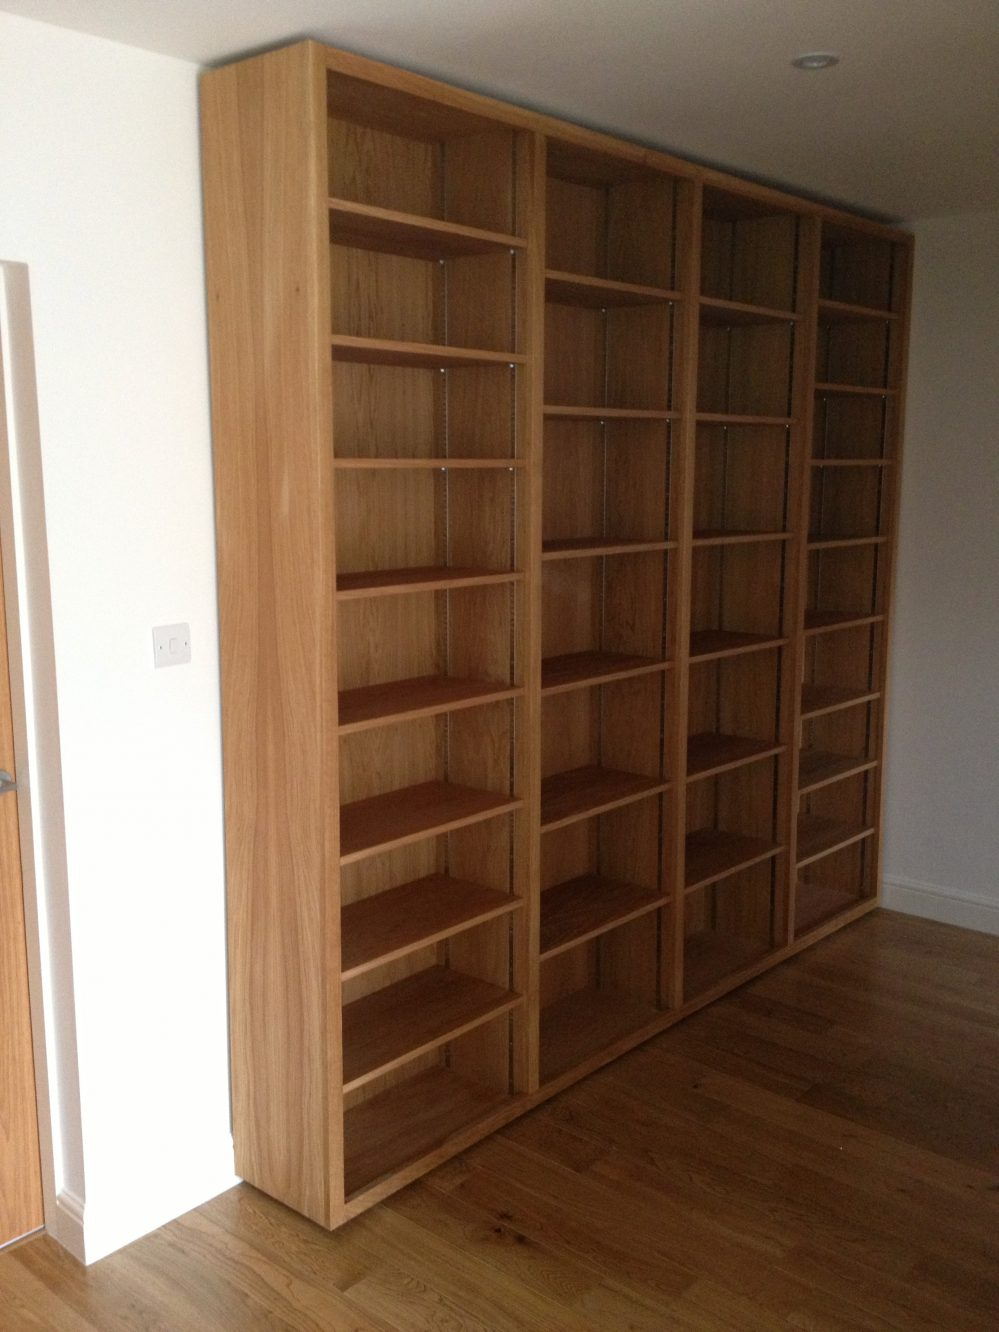 Bookcases Welcome To Emmess